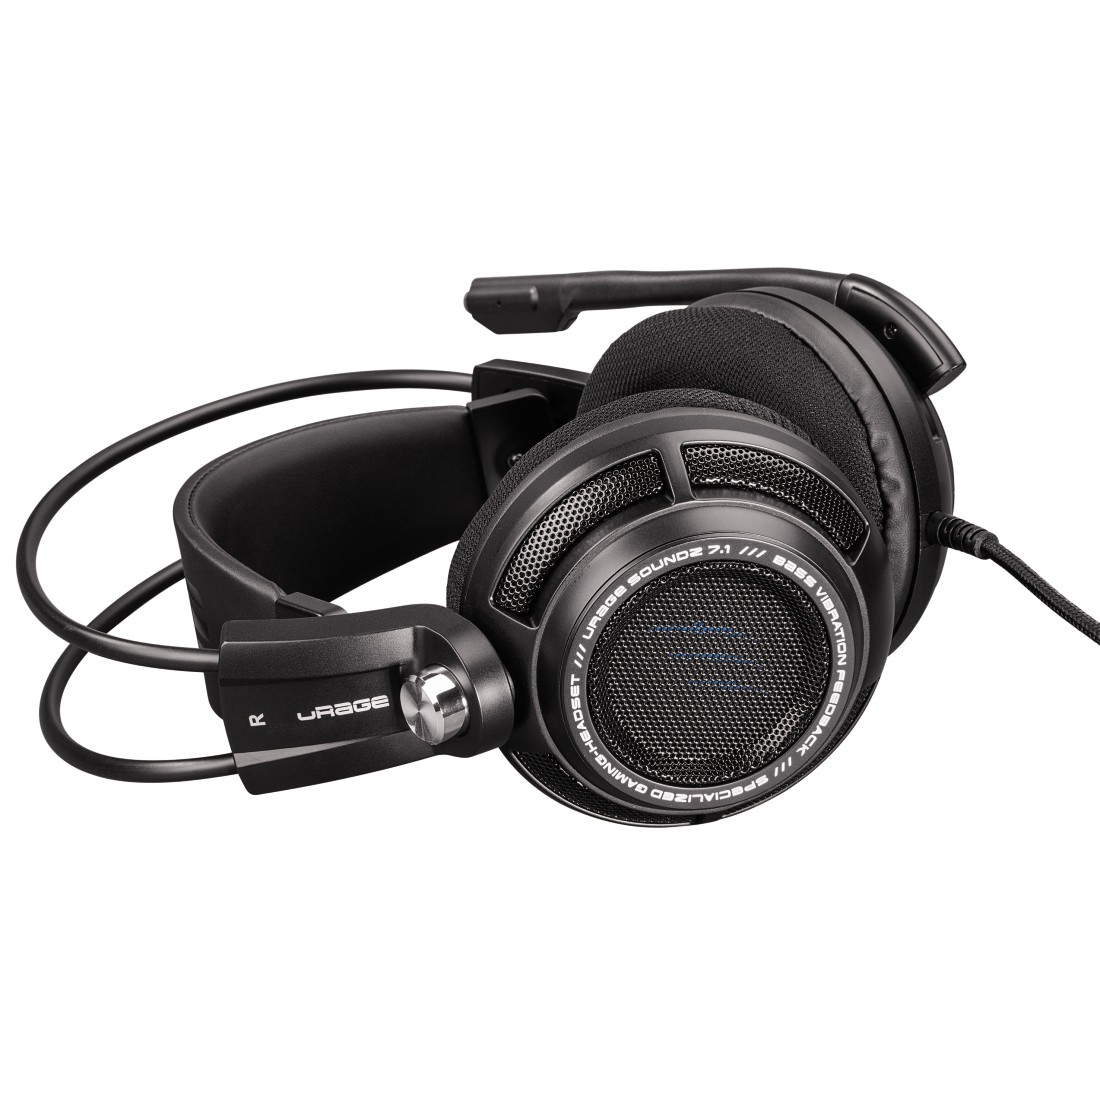 abx4 High-Res Image4 - Hama, uRage SoundZ 7.1 Gaming Headset, black